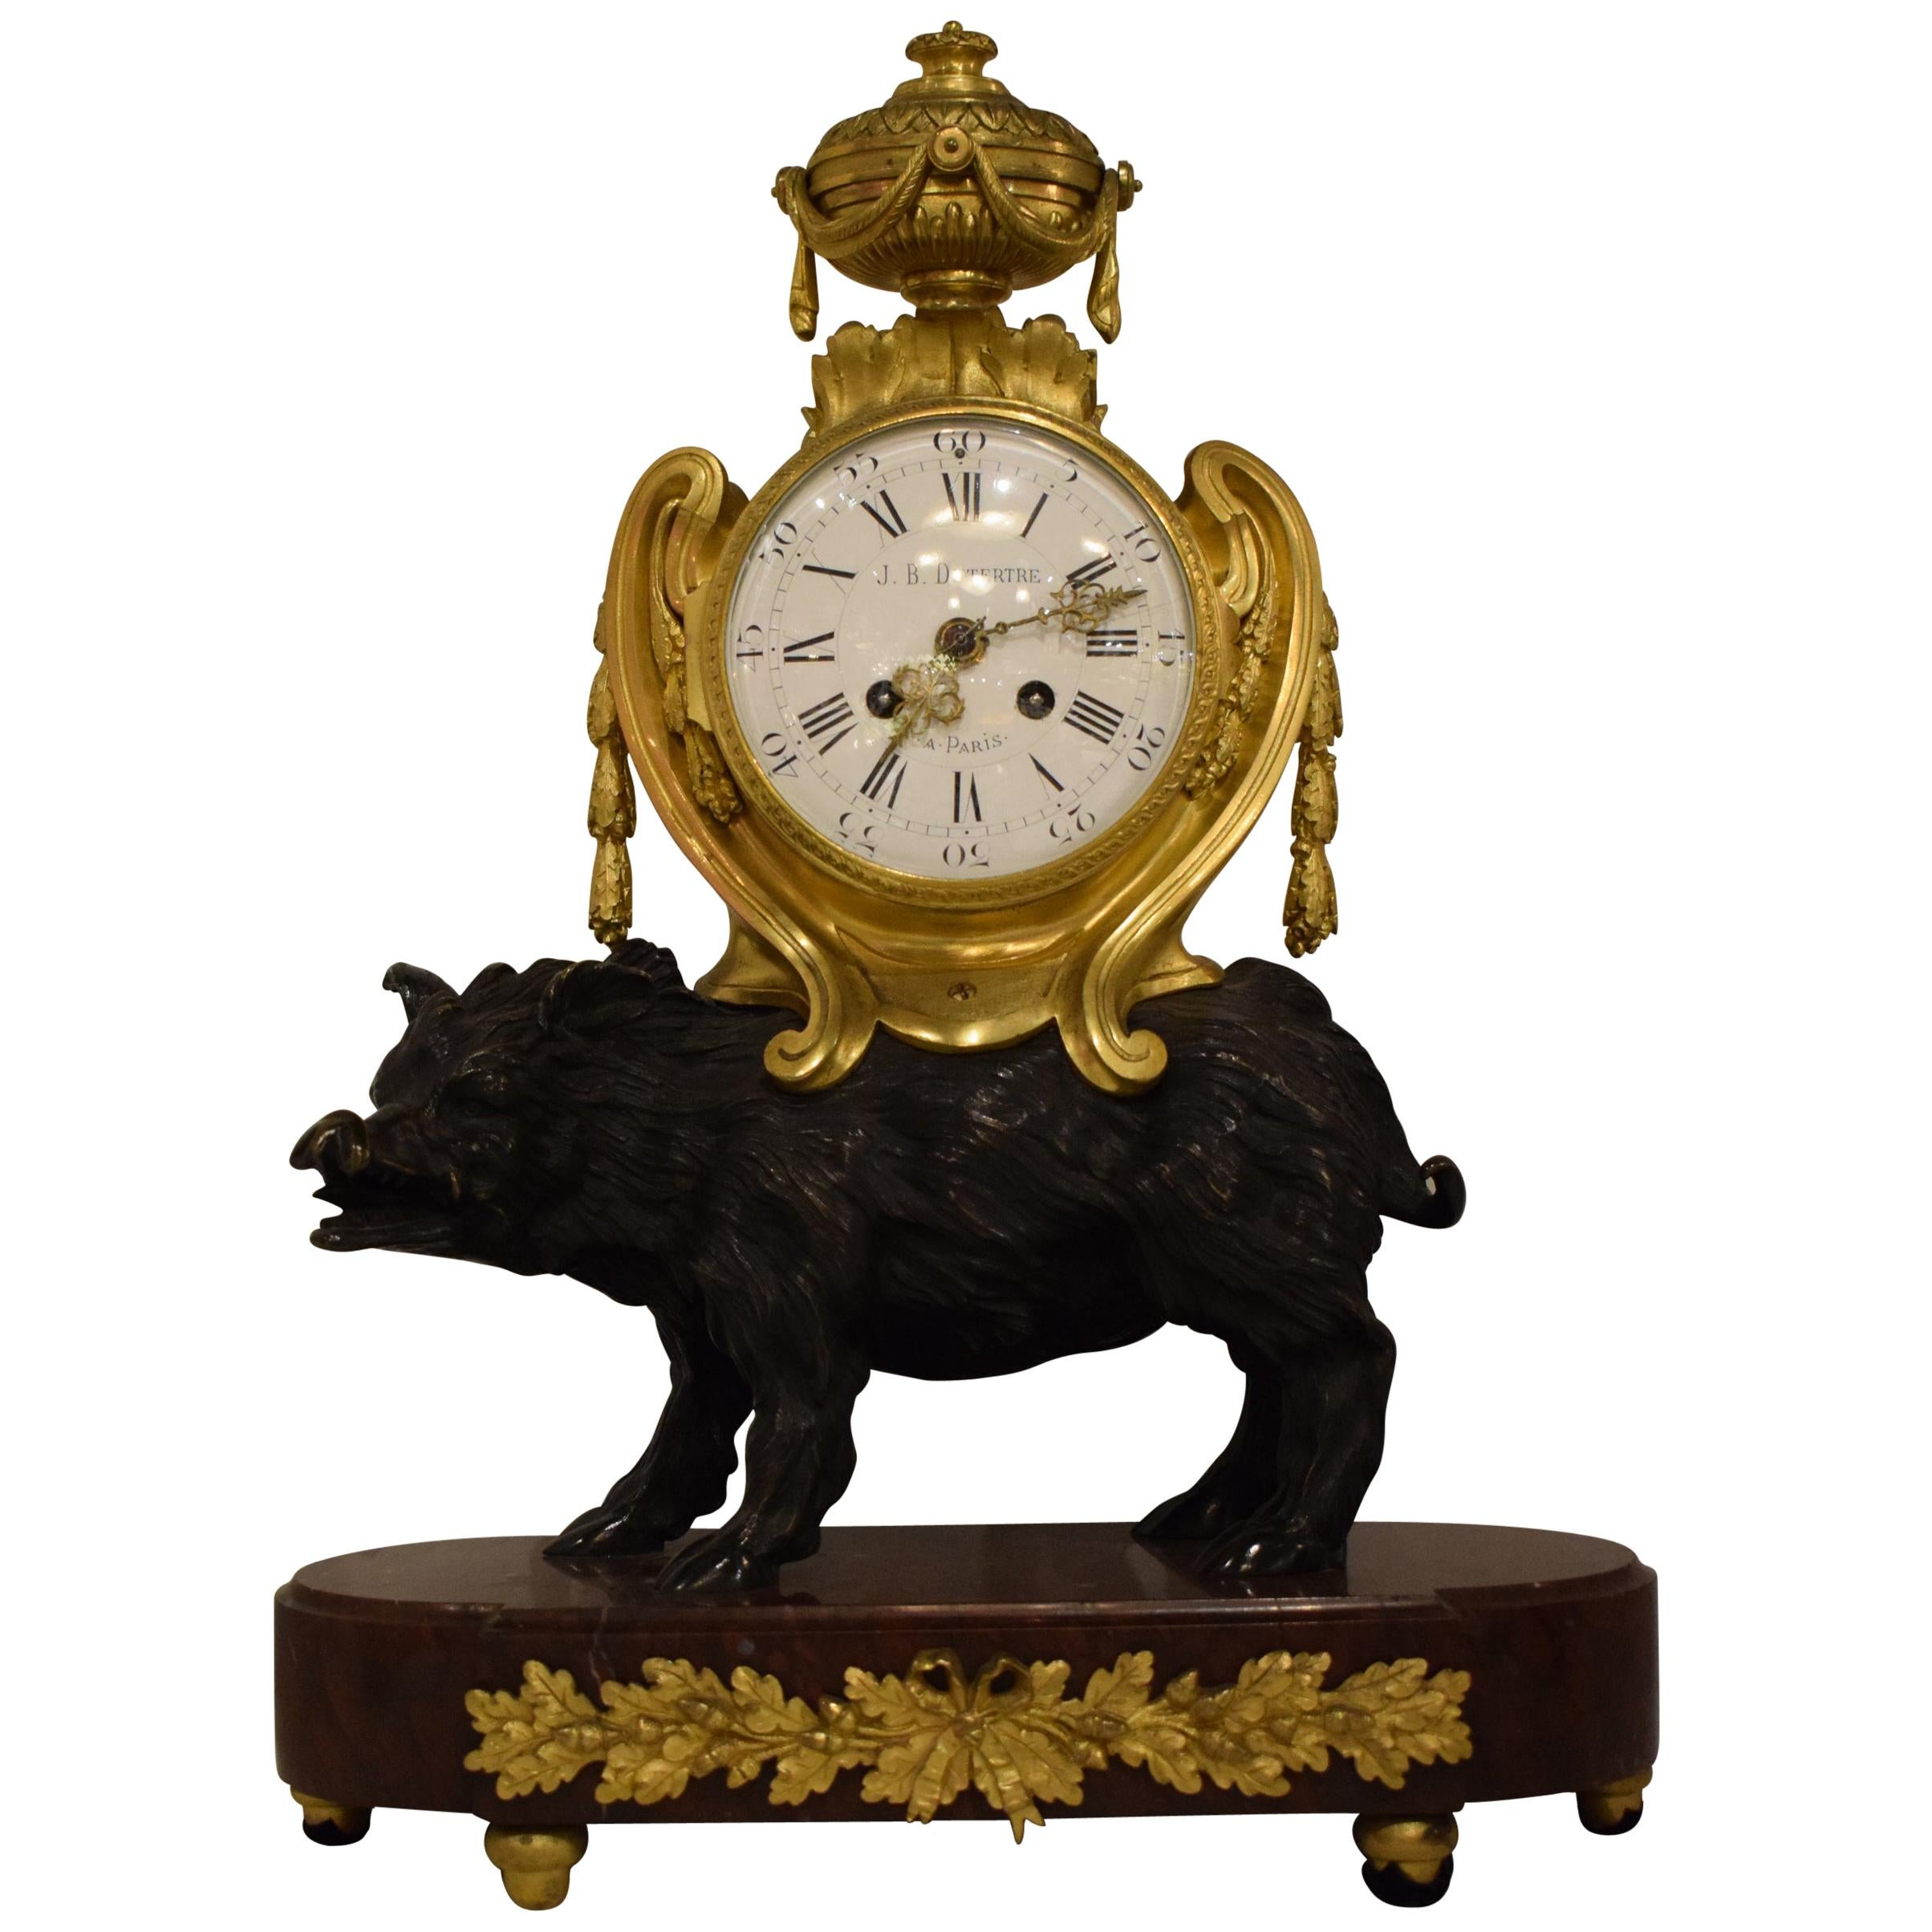 Superb Bronze and Marble Mantle Clock